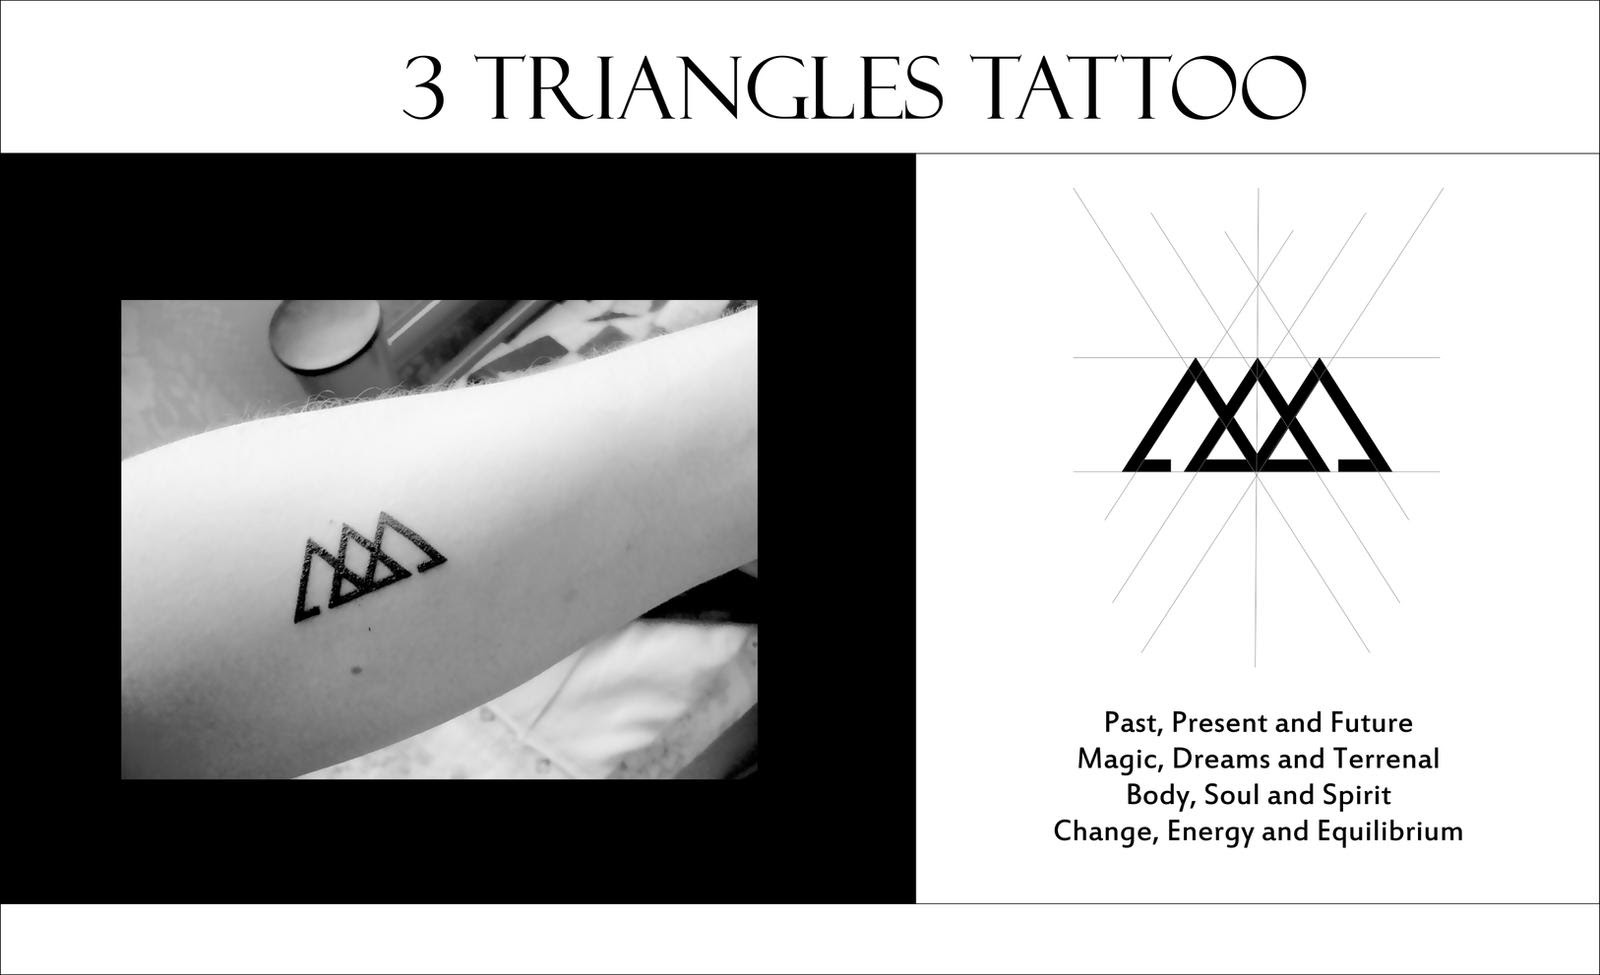 56 Small Triangle Symbol Meaning Triangle Small Meaning Symbol